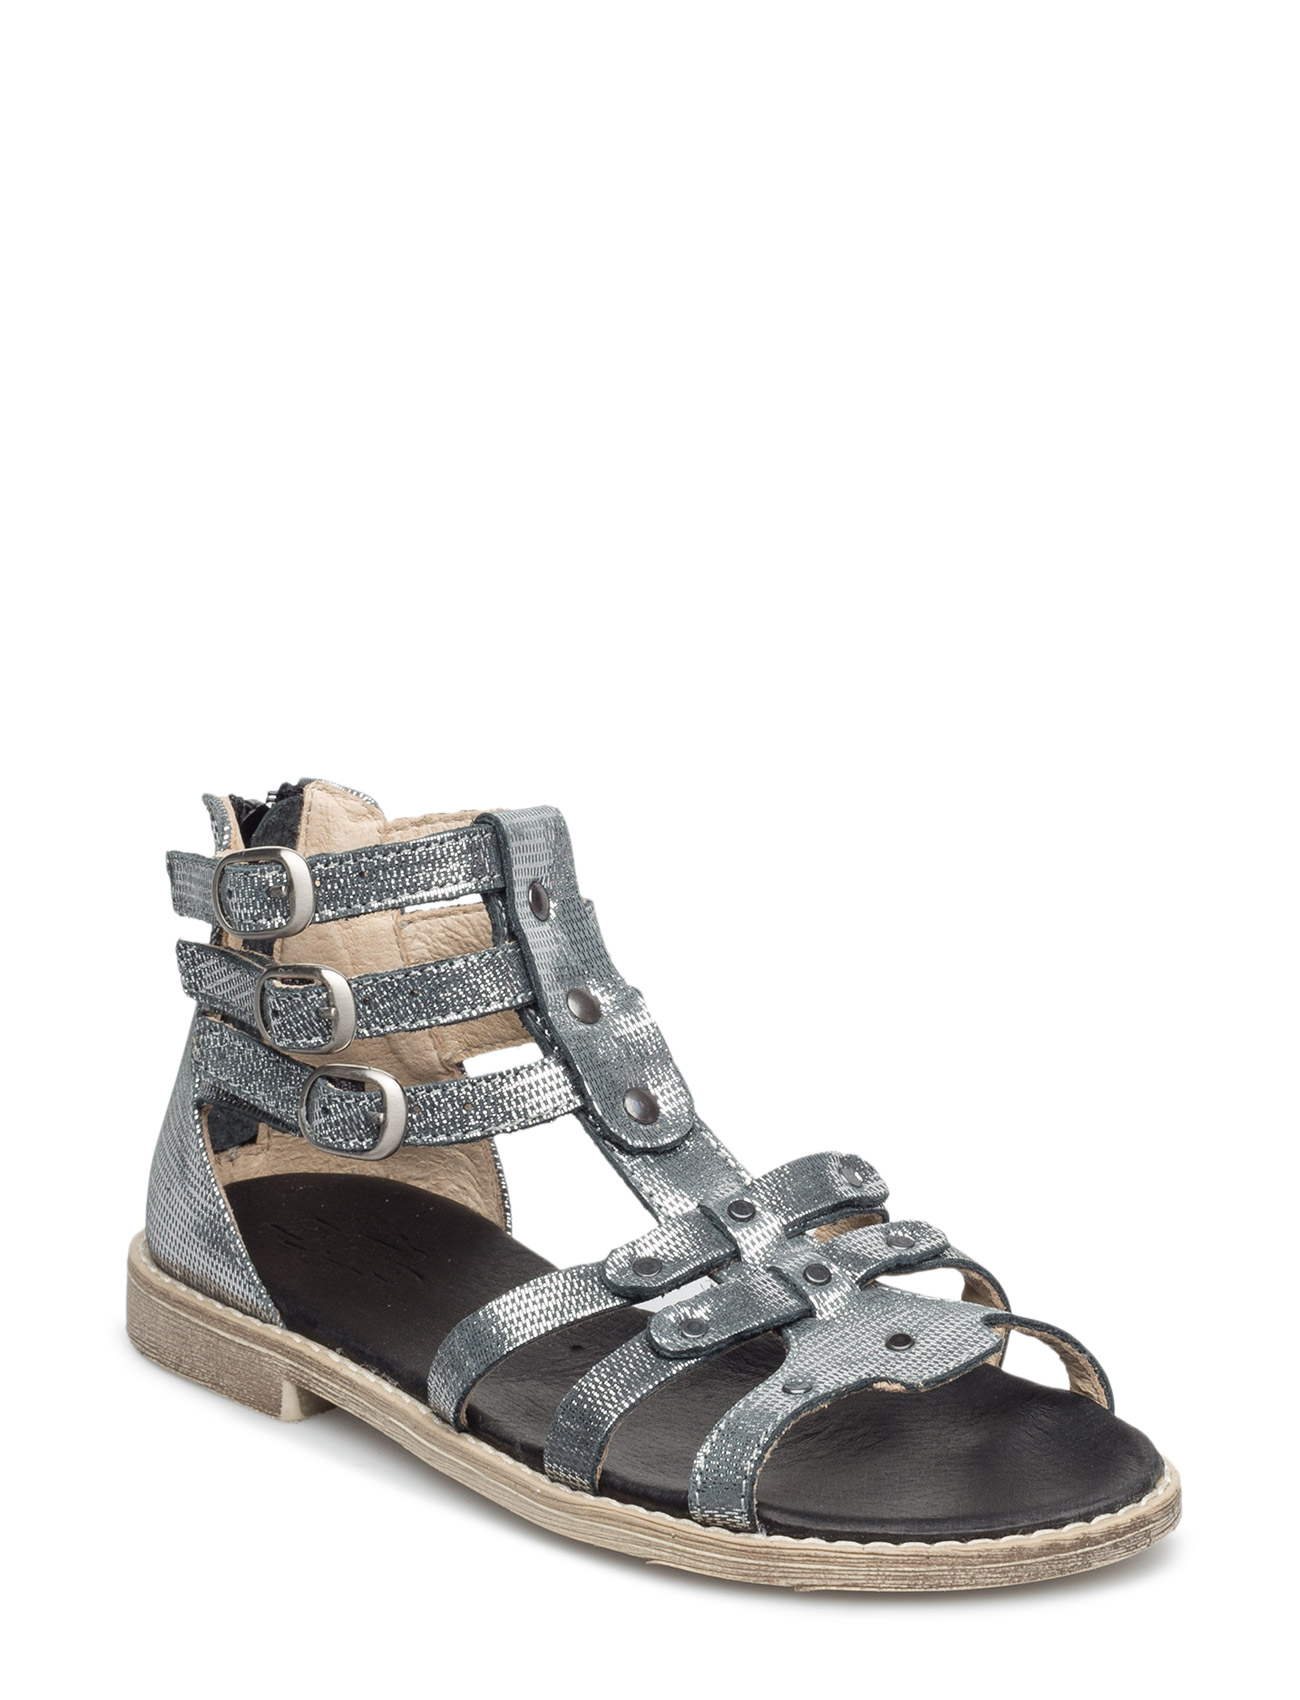 Ecological Open Retro Sandal With Super Soft Sole Arauto RAP Sandaler til Børn i